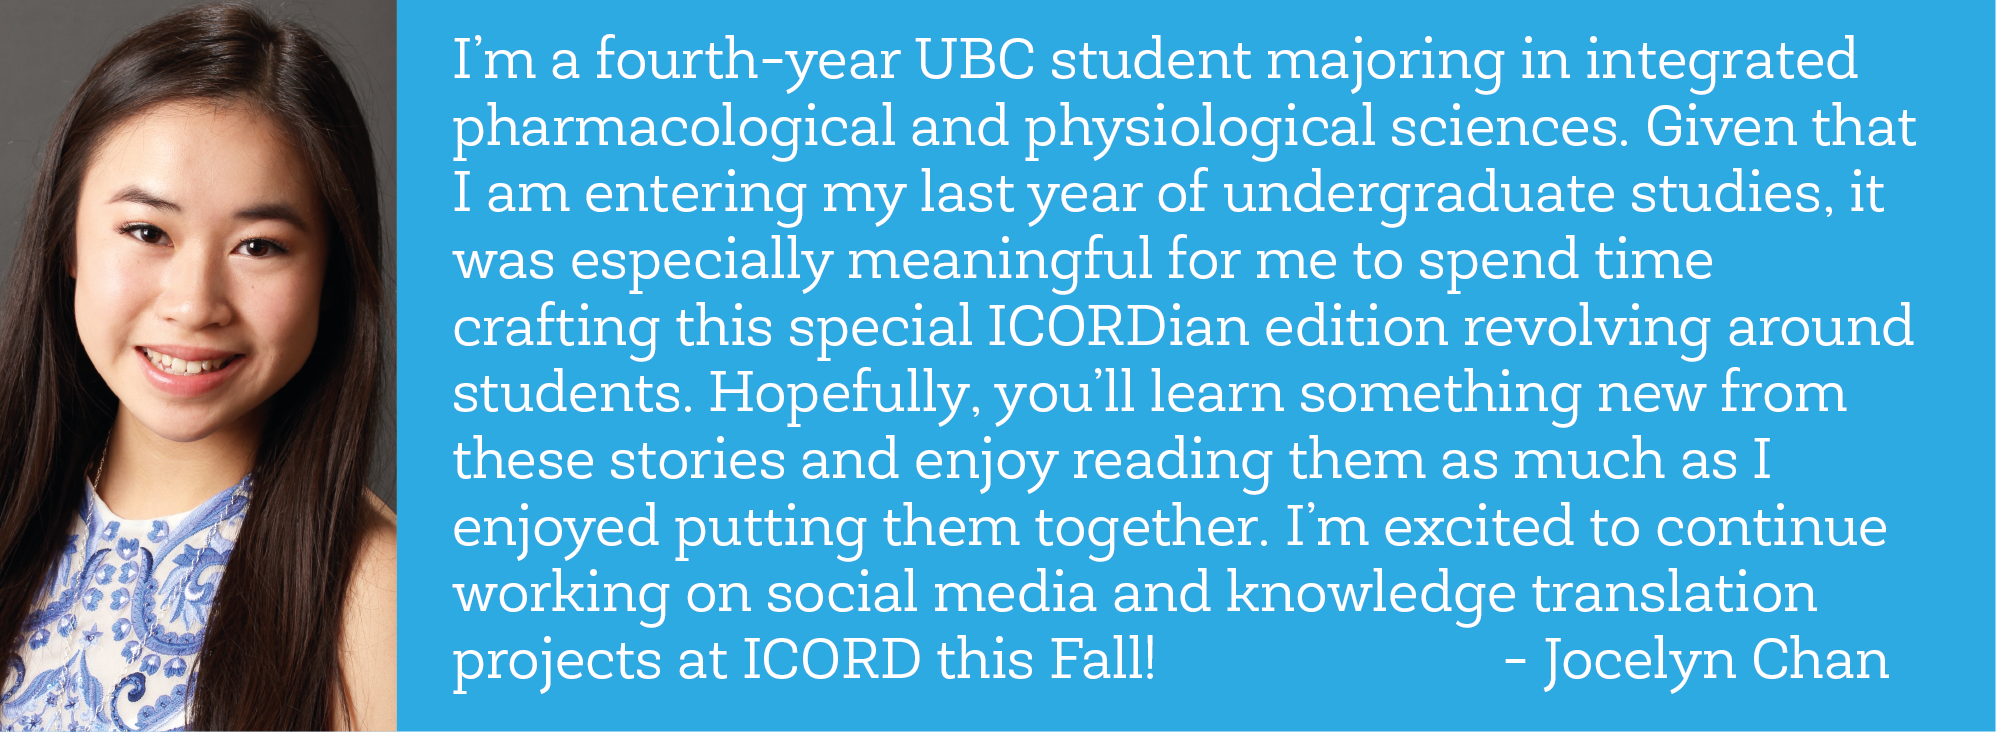 """""""I'm a fourth-year UBC student majoring in integrated pharmacological and physiological sciences. Given that I am entering my last year of undergraduate studies, it was especially meaningful for me to spend time crafting this special ICORDian edition revolving around students. Hopefully, you'll learn something new from these stories and enjoy reading them as much as I enjoyed putting them together. I'm excited to continue working on social media and knowledge translation projects at ICORD this Fall!"""" - Jocelyn Chan"""